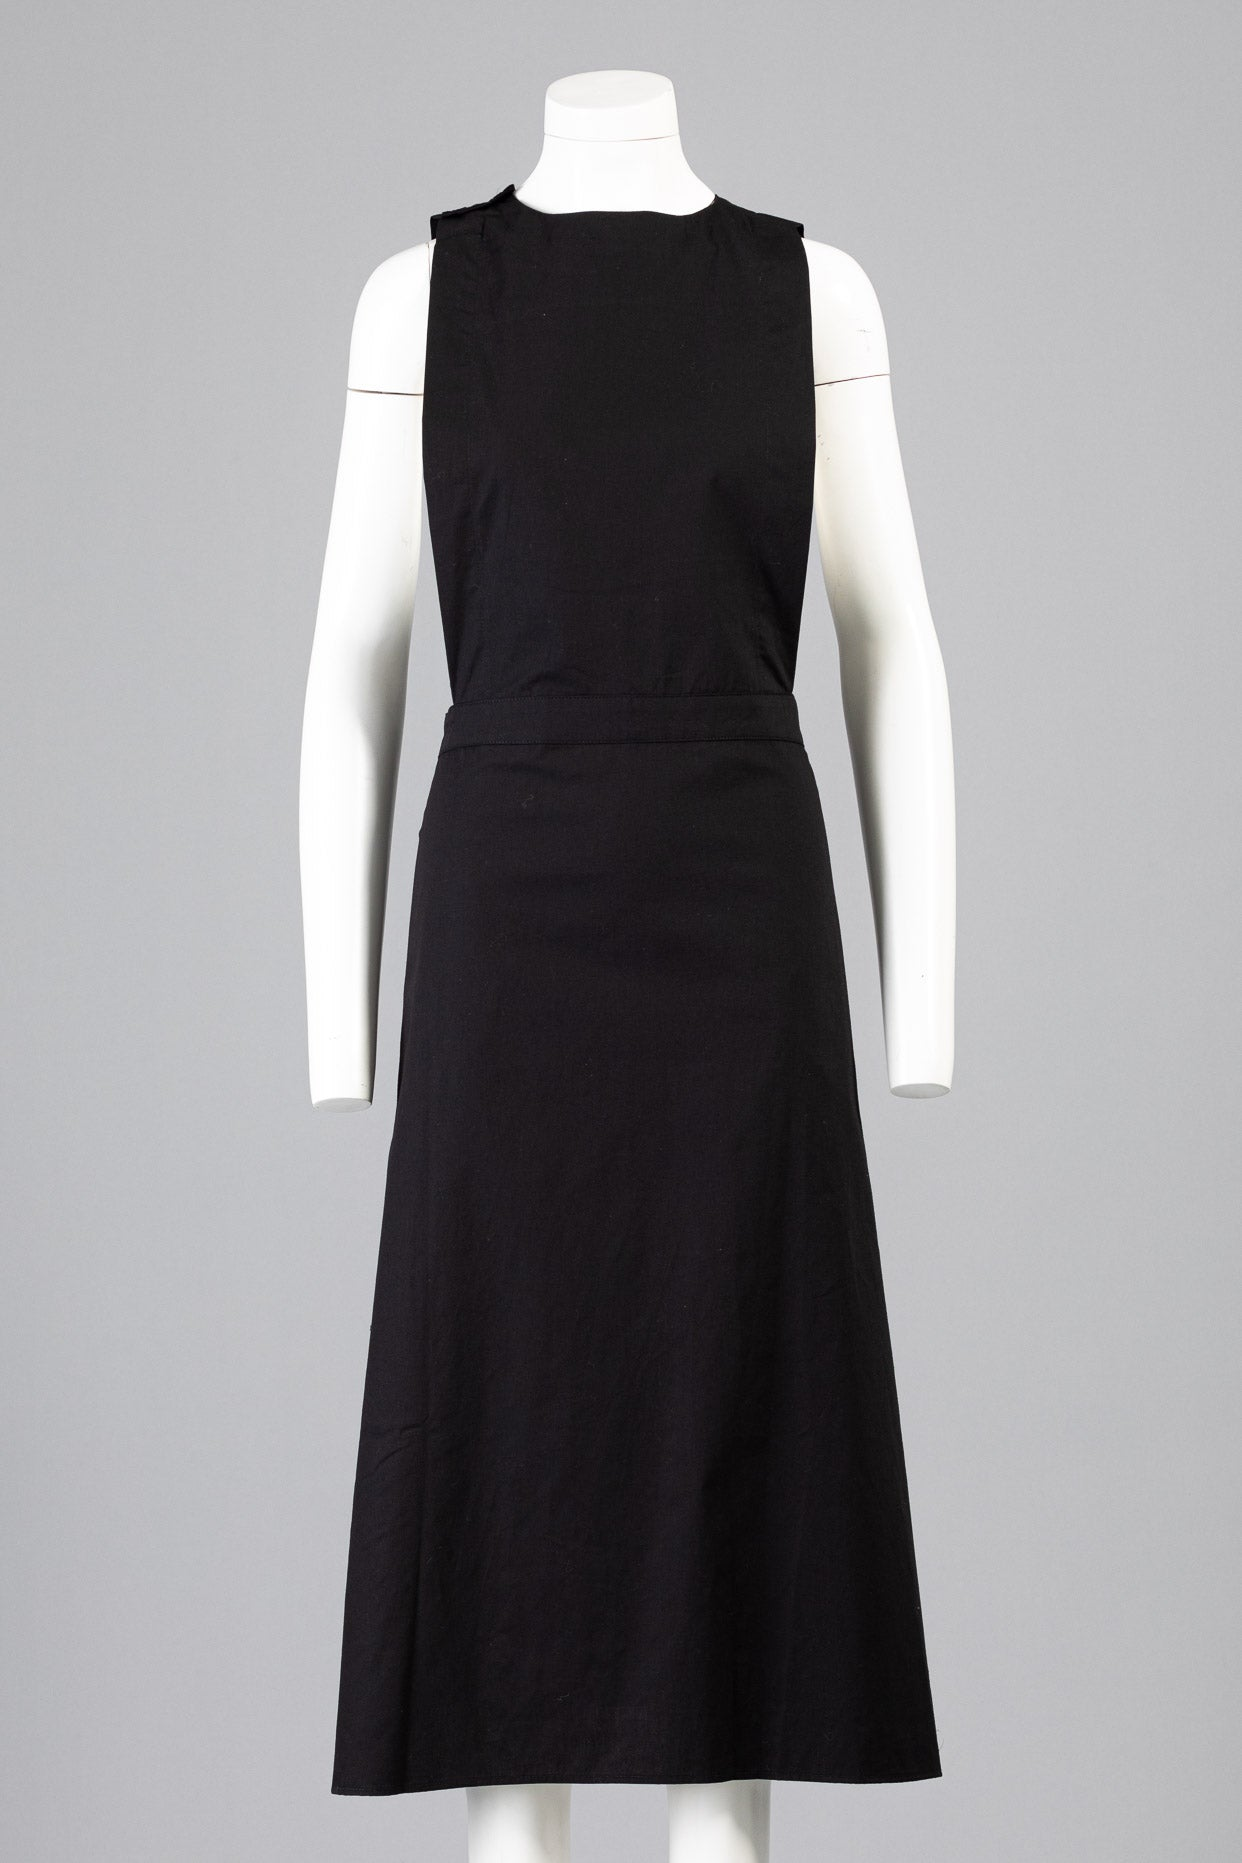 RUBIDOUX APRON DRESS